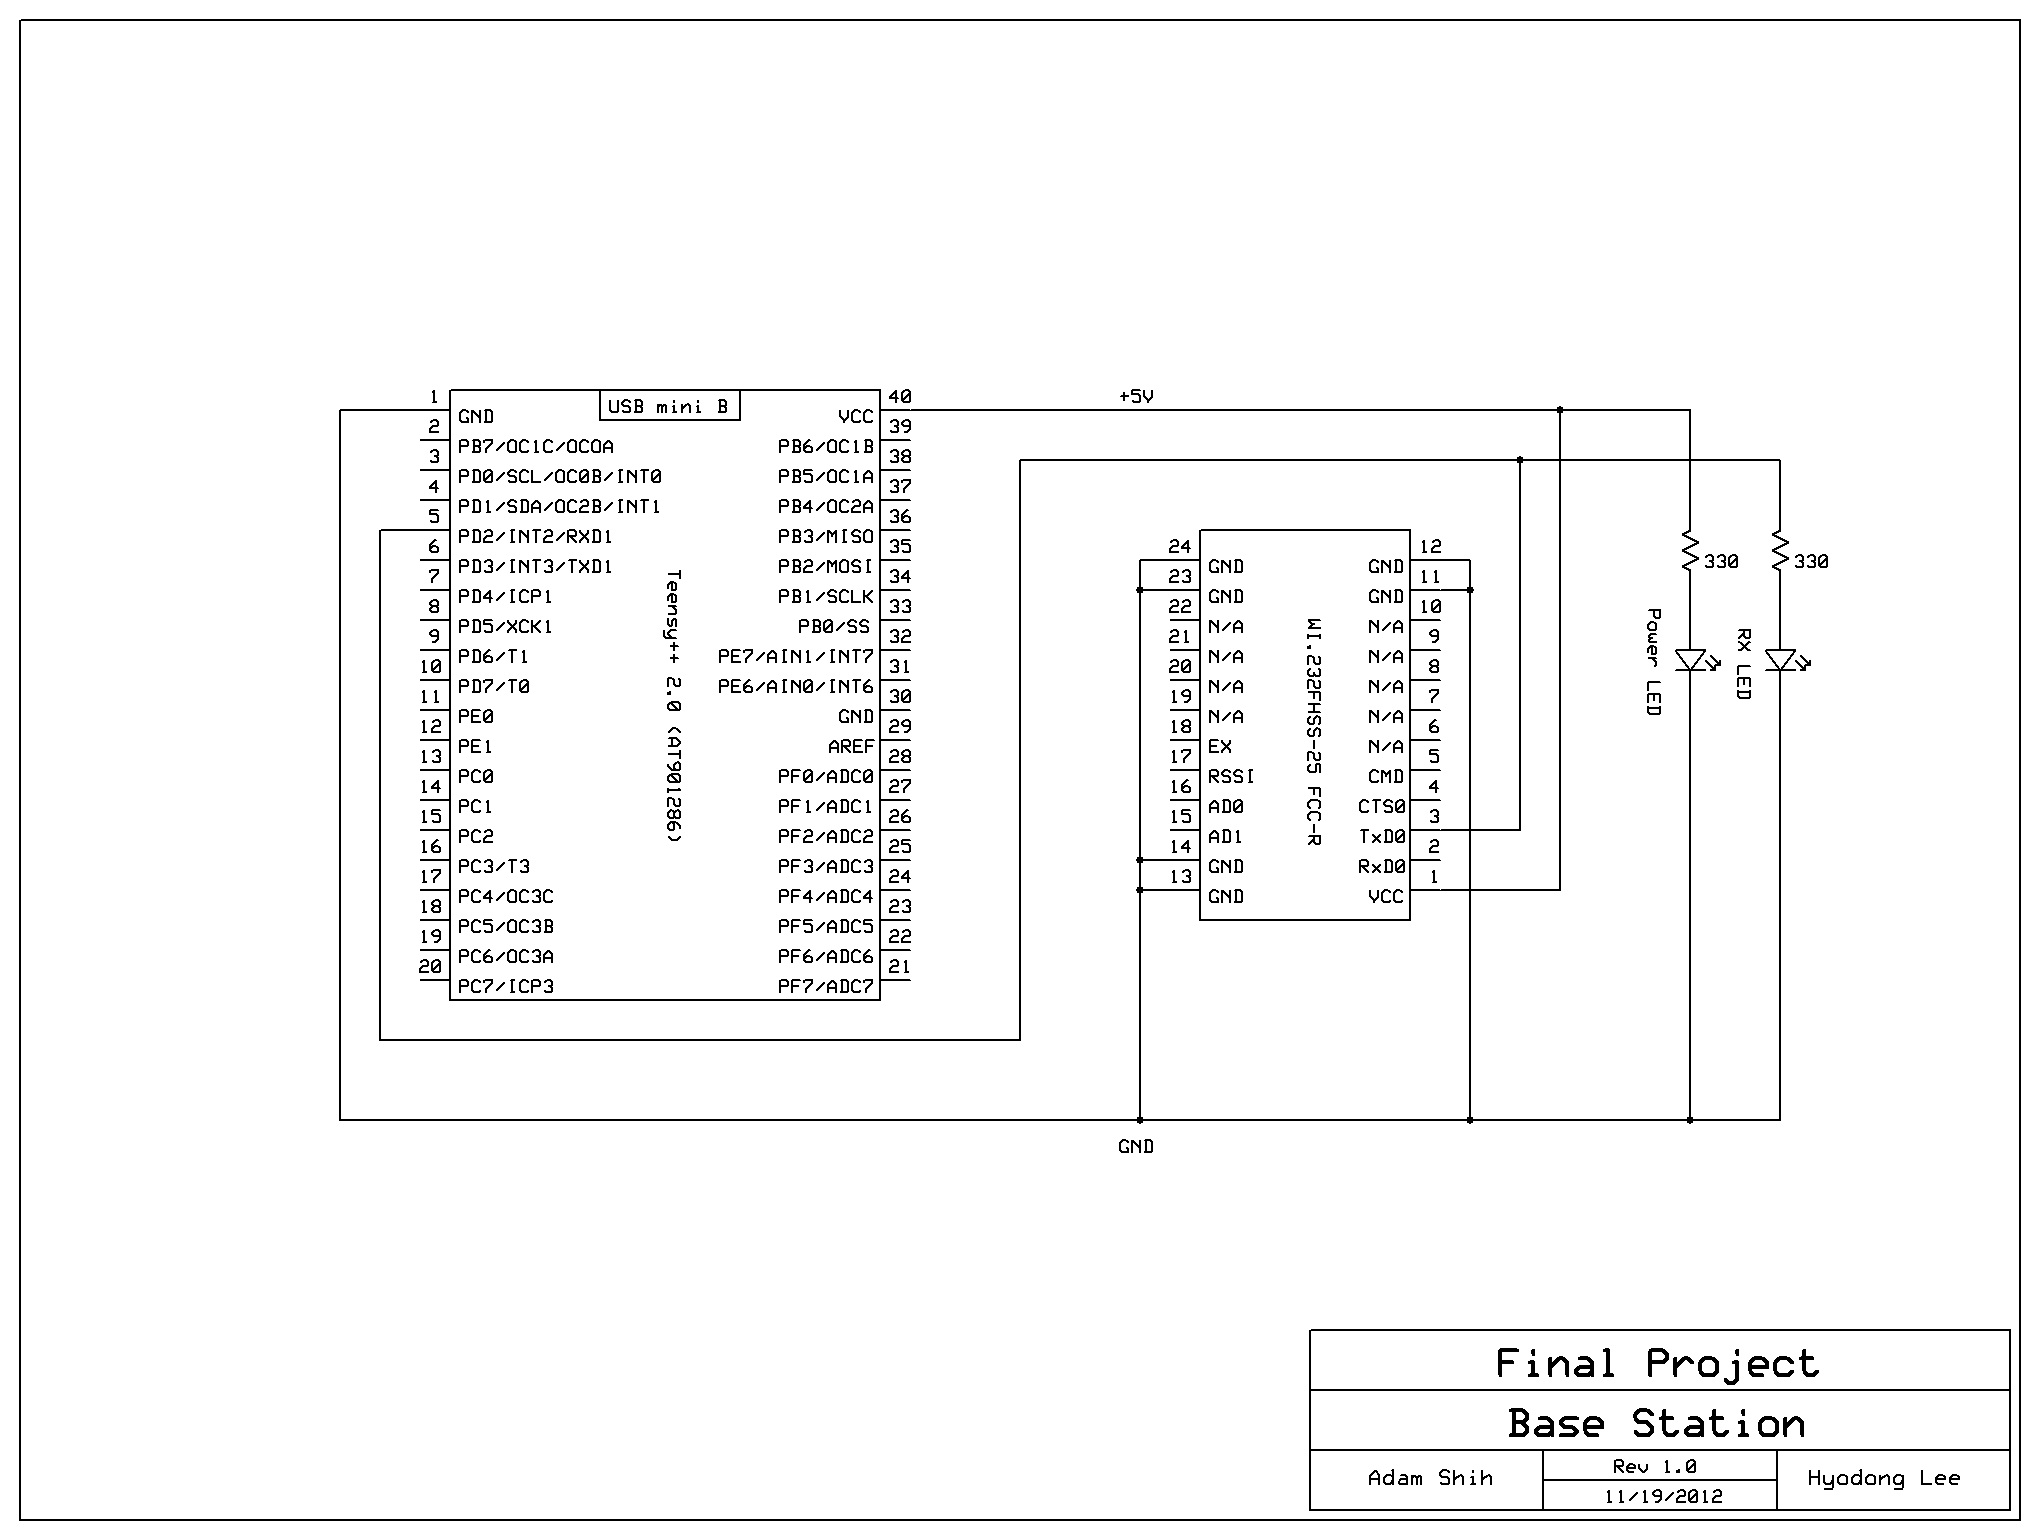 Glove Mouse Ece 4760 On The Block Diagram Right Click Physical Channel Constant And Base Station